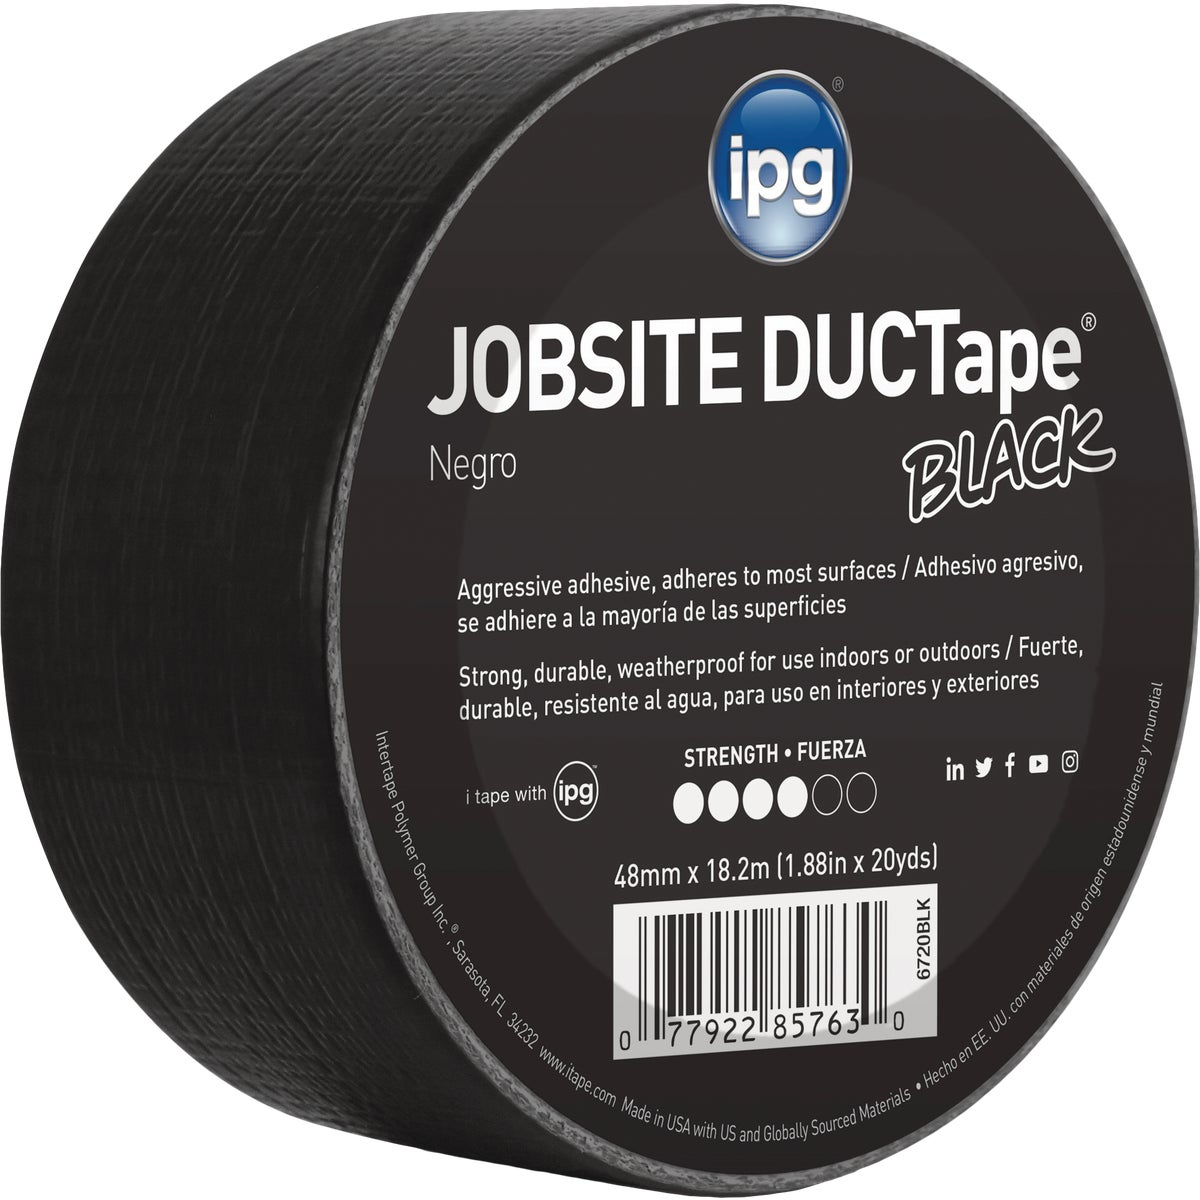 20YDS DUCT TAPE BLACK - 6720BLK by Intertape Polymer